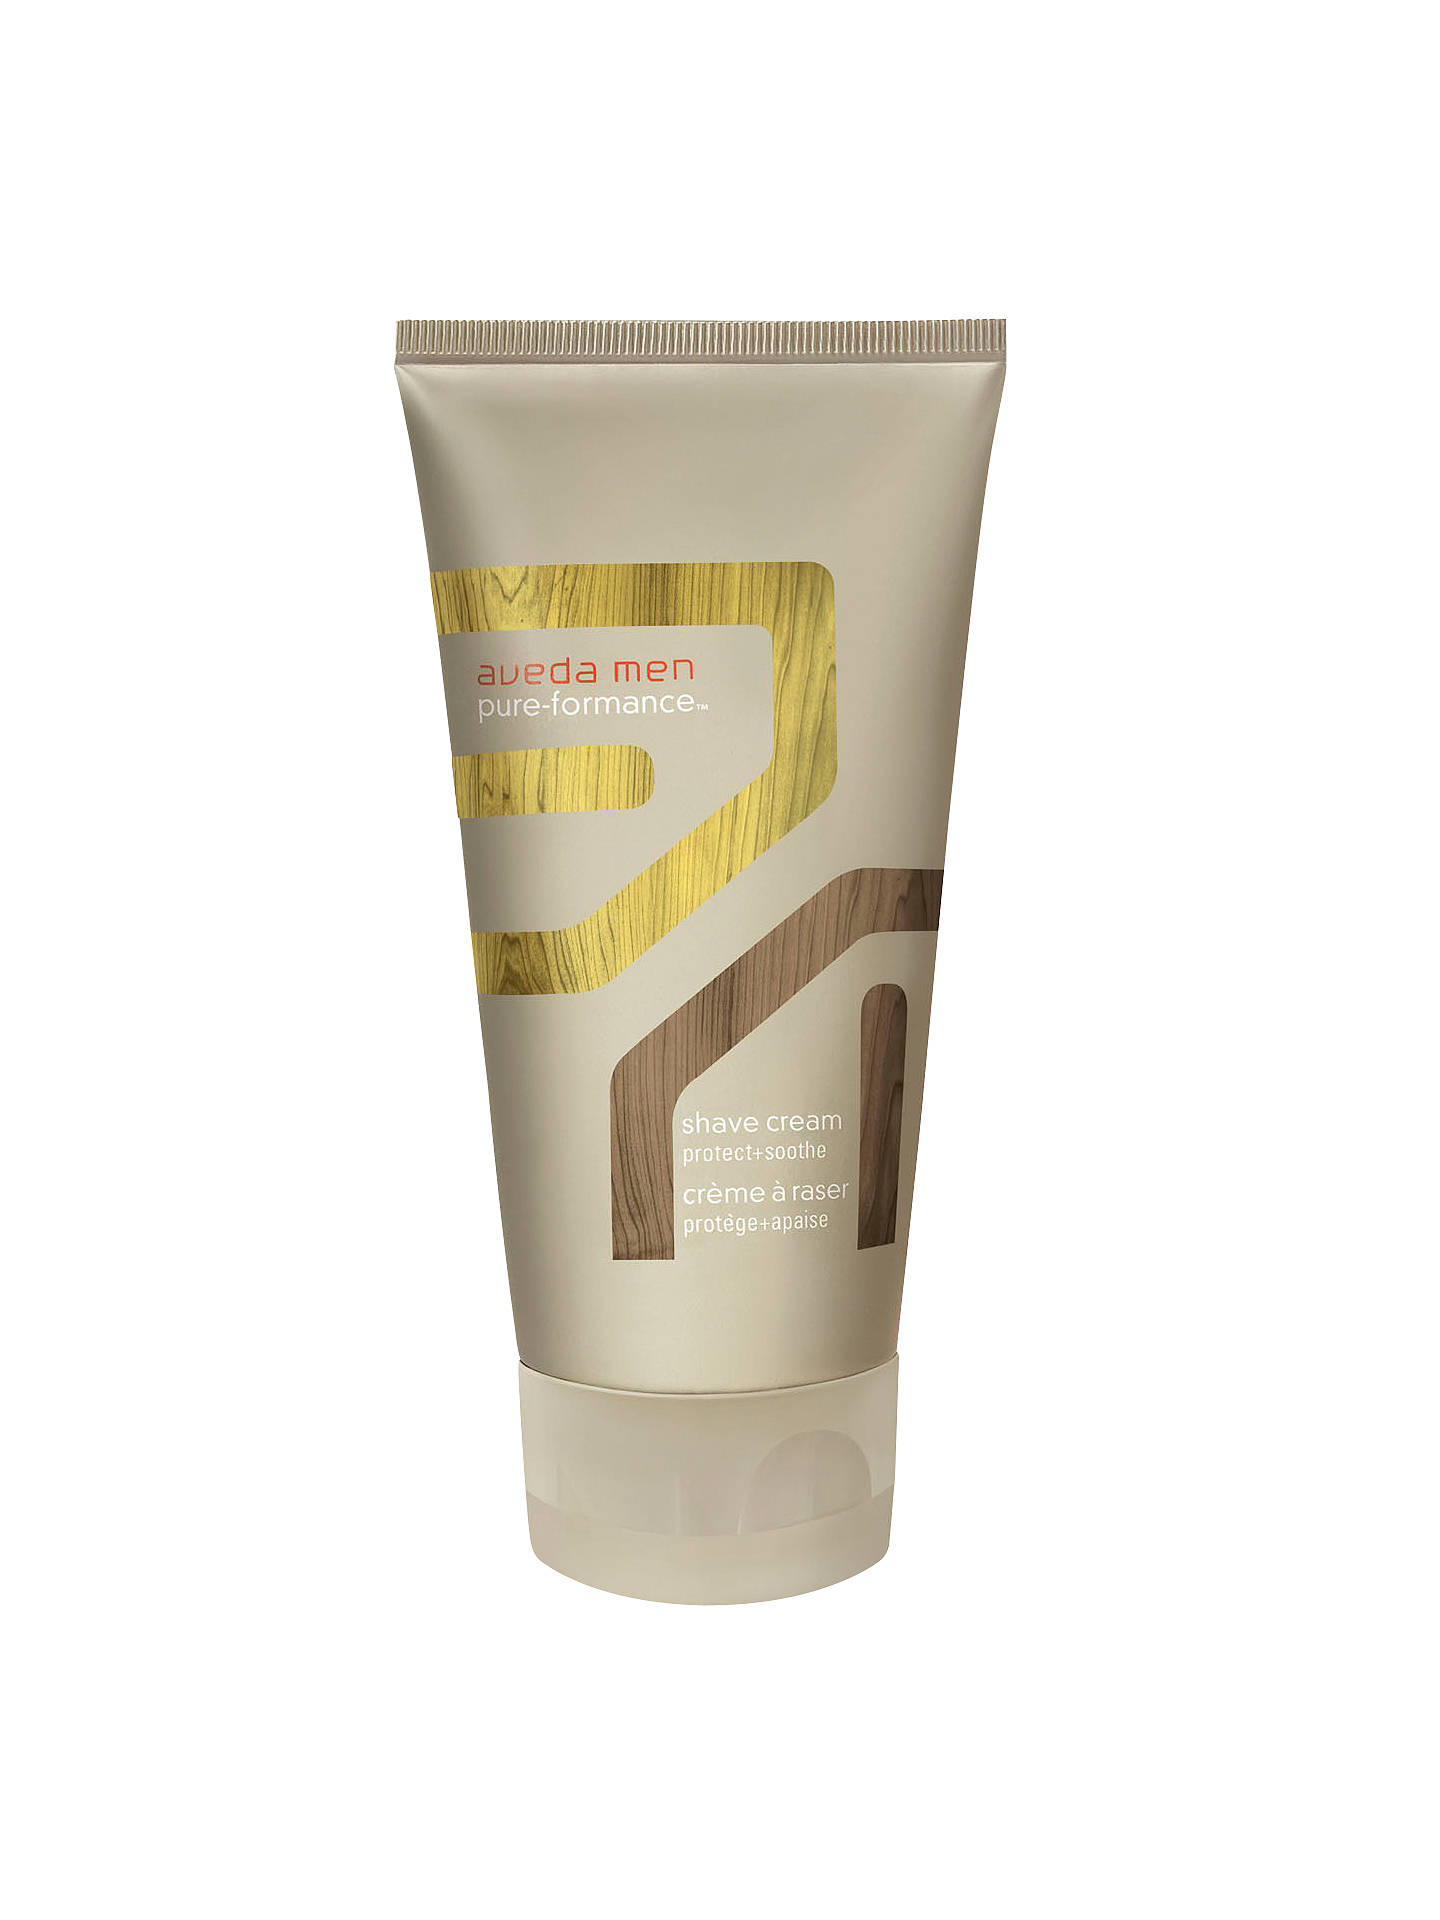 BuyAVEDA Men Pure-Formance™ Shave Cream, 150ml Online at johnlewis.com